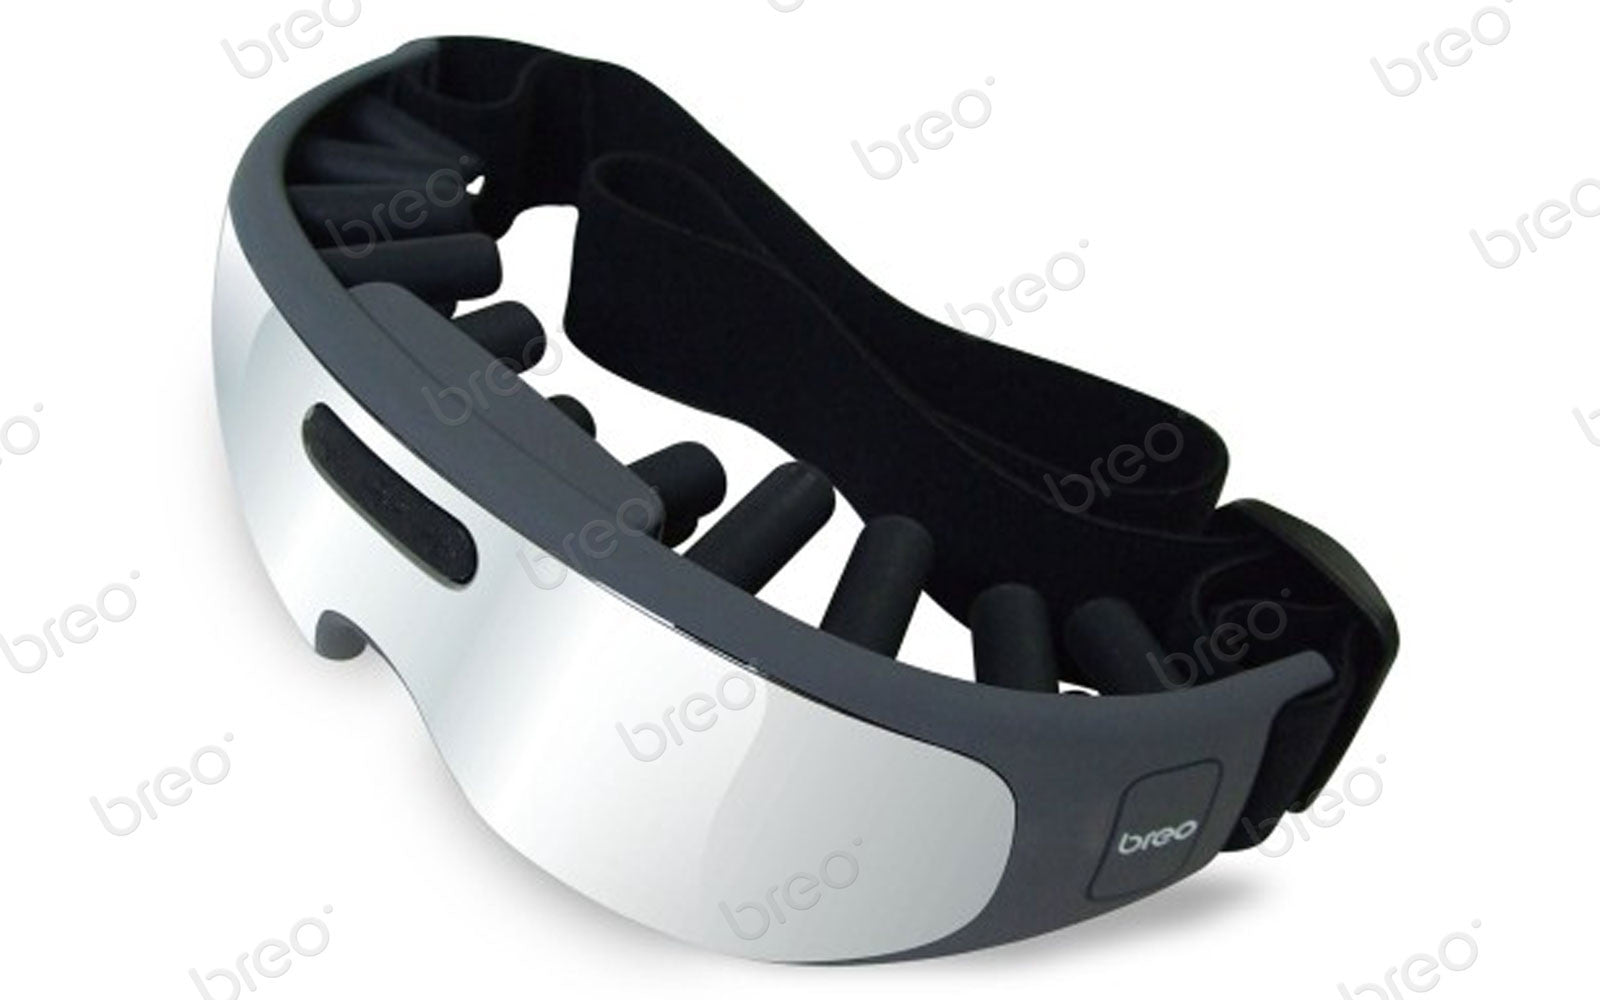 Breo iSee108 Eye Massager - Breo-USA